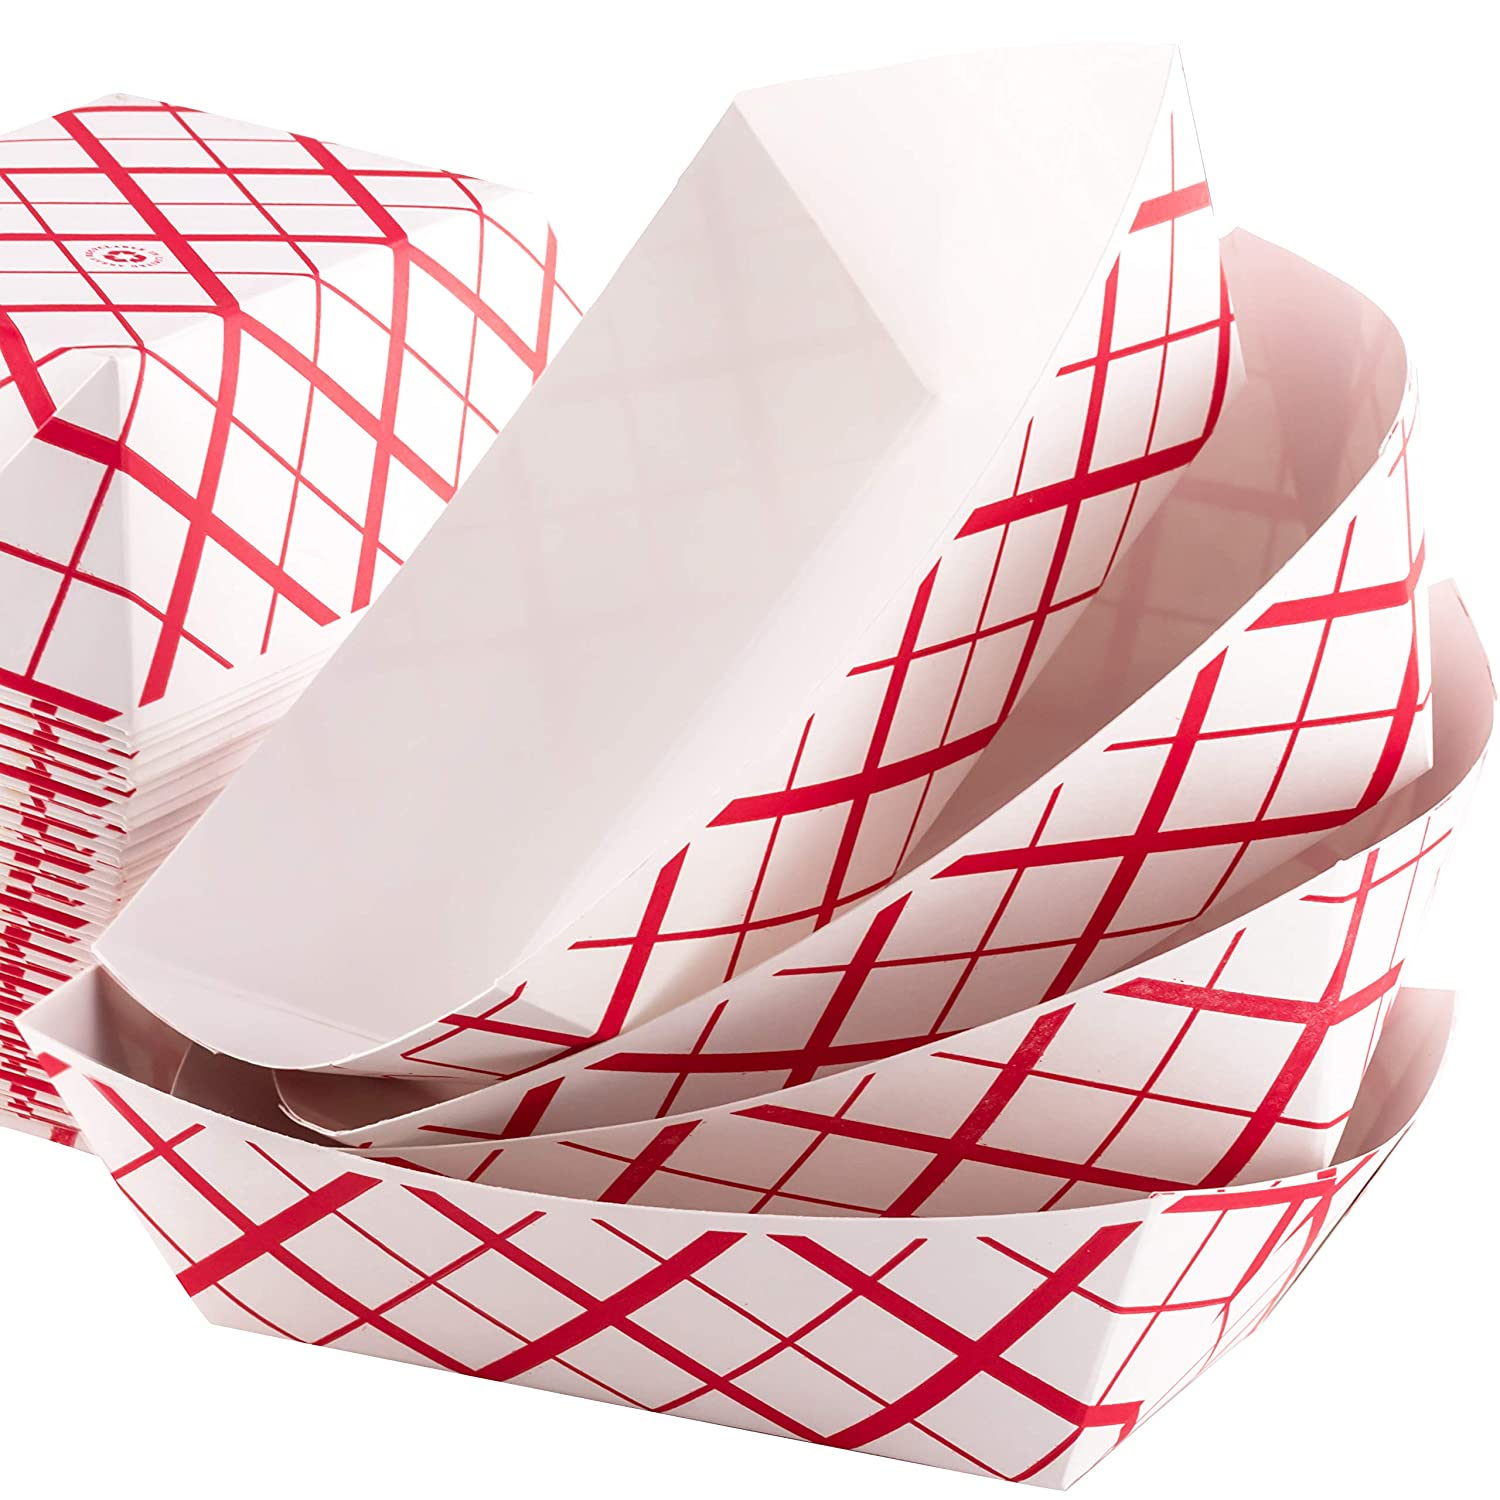 Grease-Proof Sturdy Food Trays 3 lb Capacity 100 Pack by Eucatus. Serve Hot or Cold Snacks in These Classic Carnival Style Checkered Paper Baskets. Perfect for Concession Stand or Circus Party Fare!